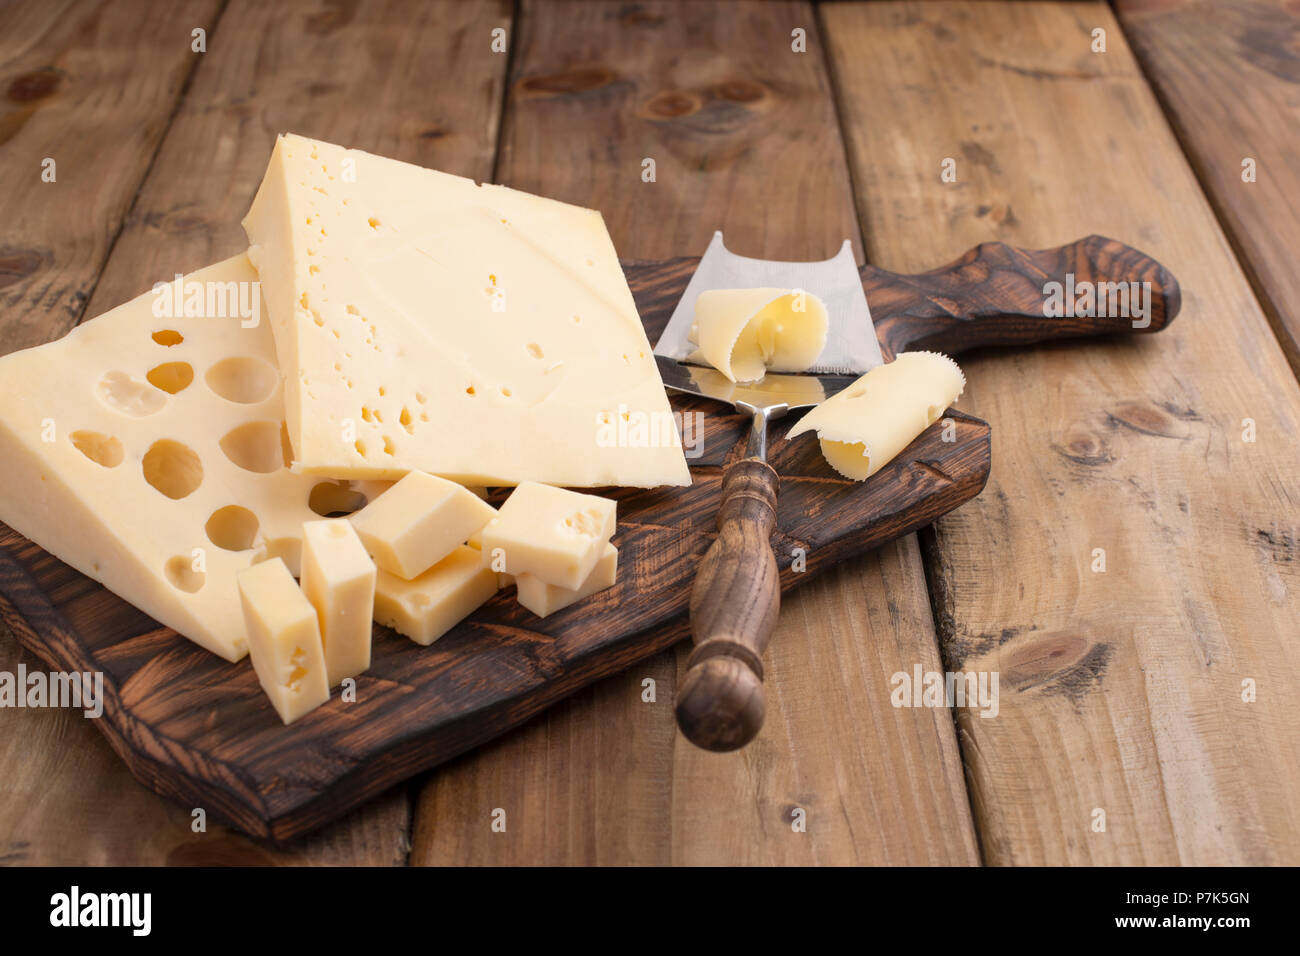 Cheese with holes large and small. Wooden board and knife. Traditional Dutch cheese. Copy space. - Stock Image